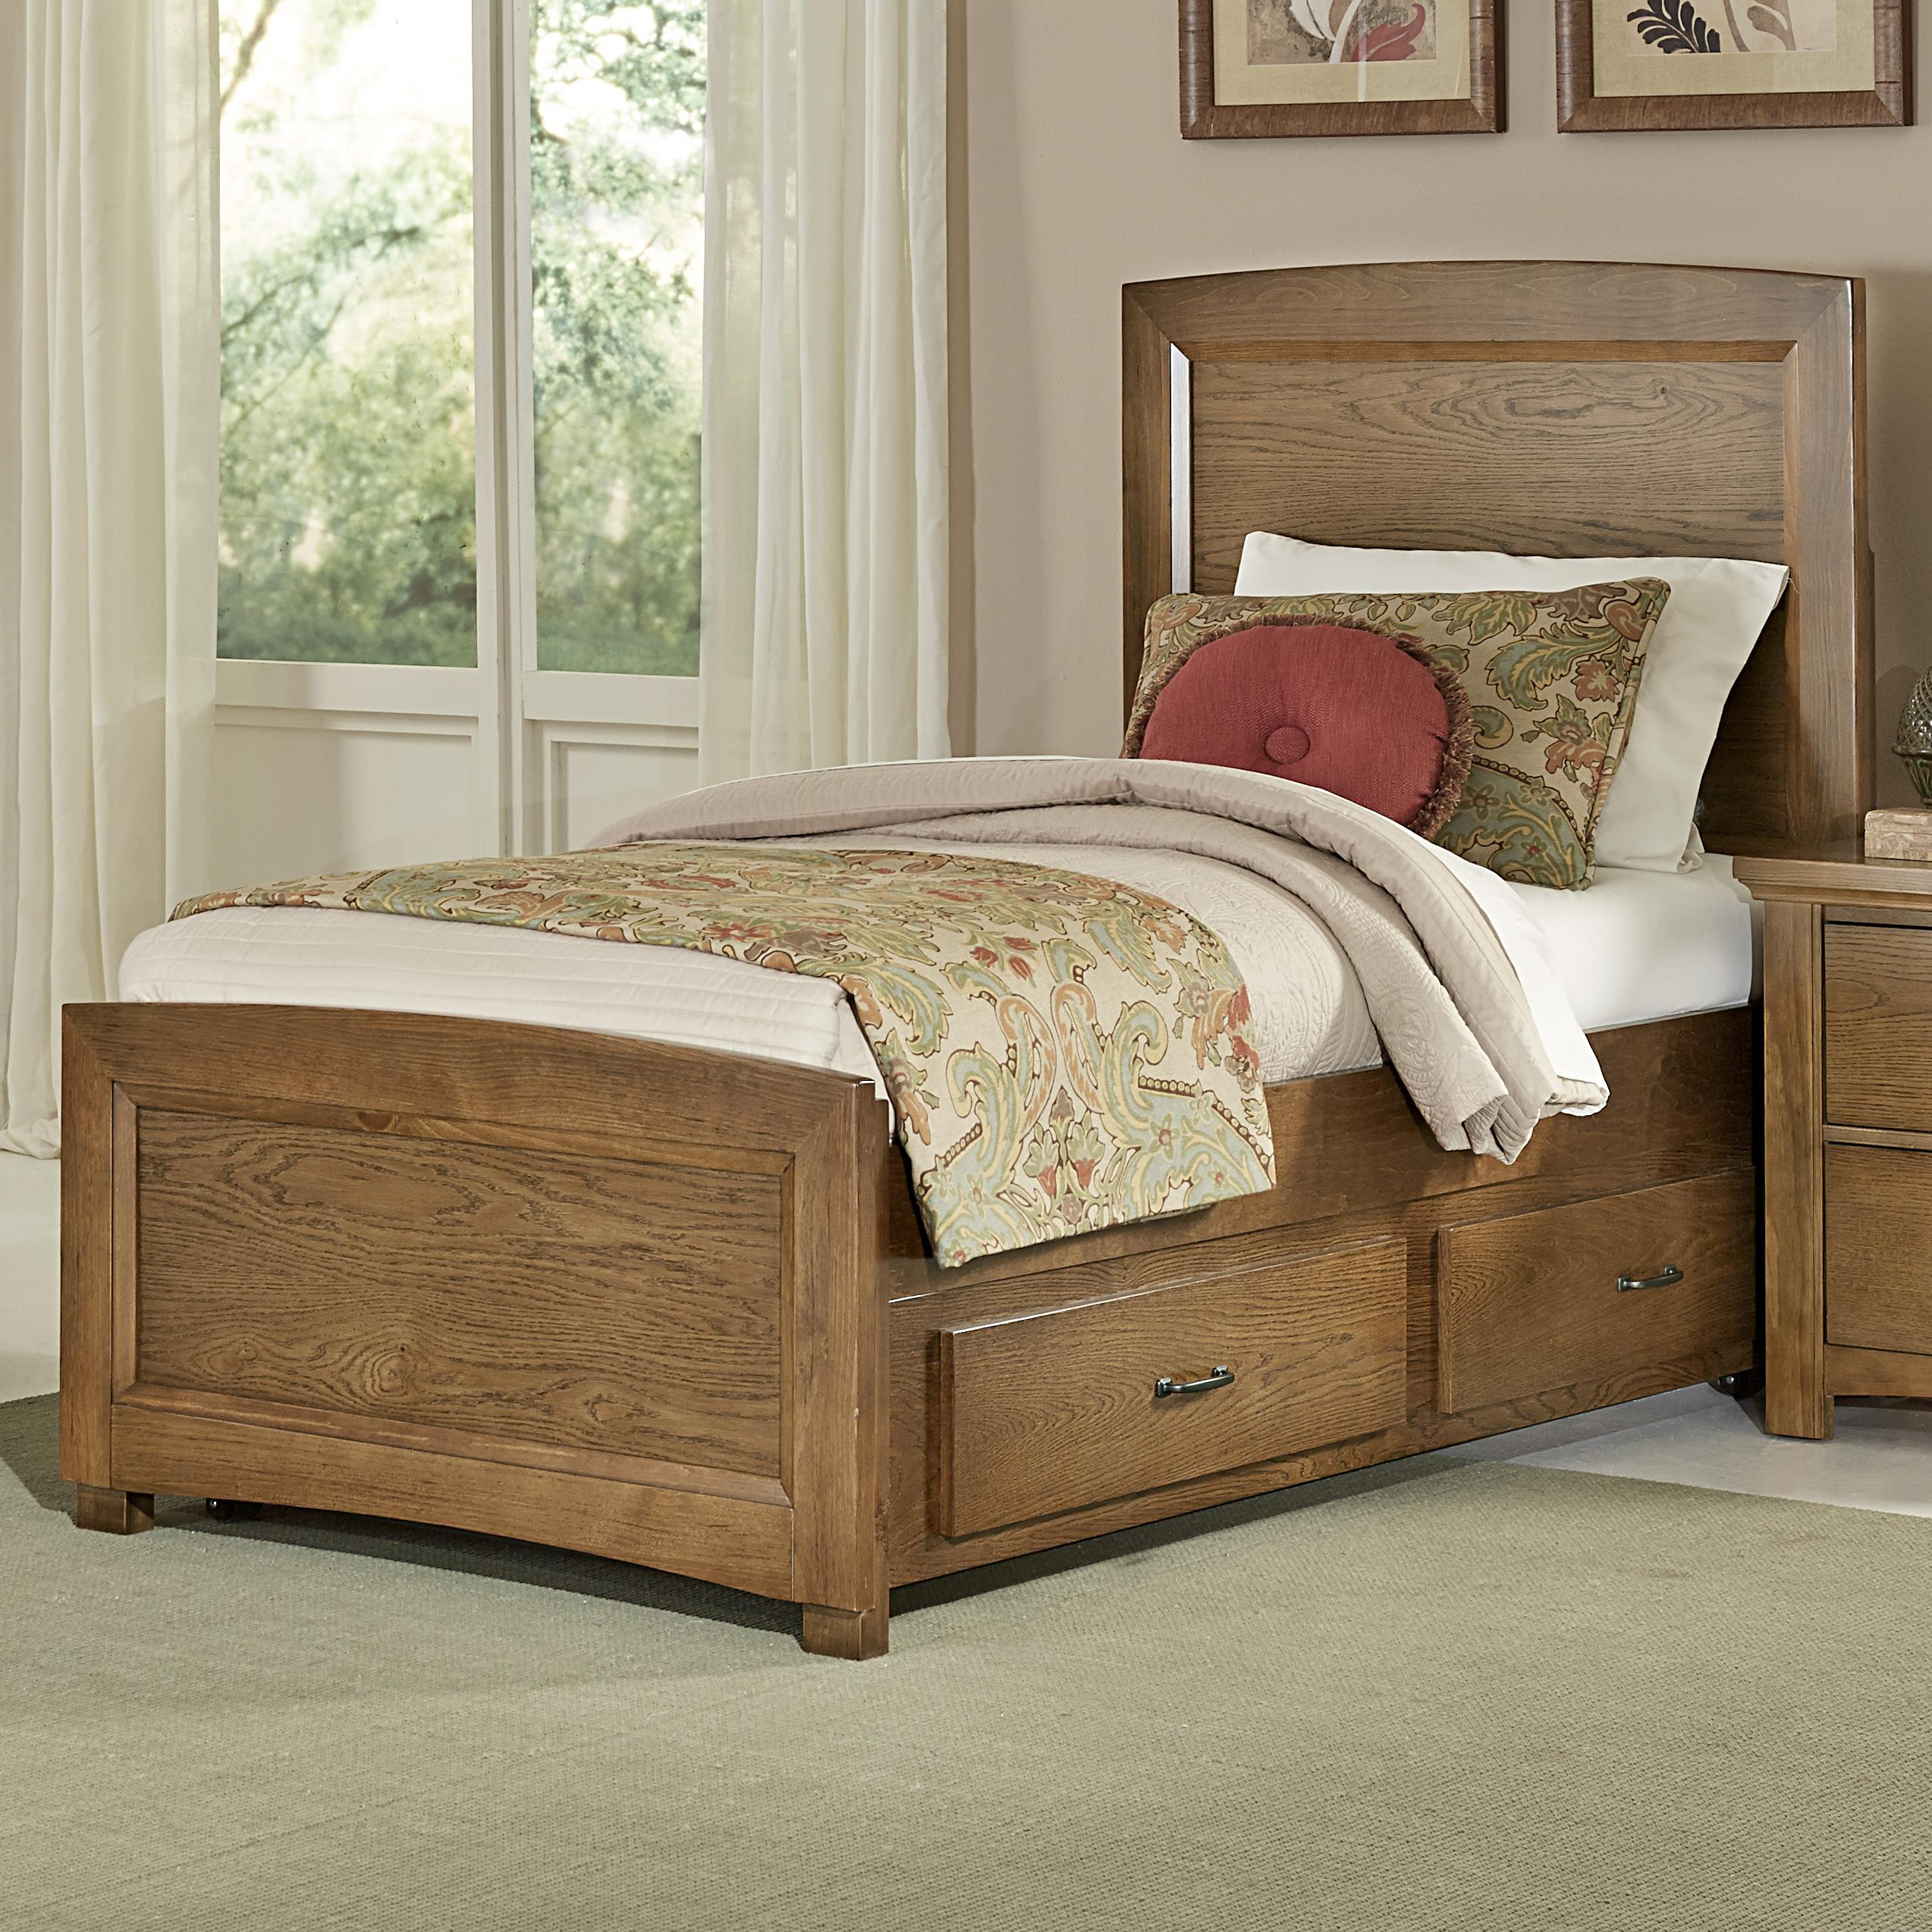 Vaughan Bassett Transitions Twin Panel Bed with Trundle - Item Number: BB63-338+833+900+822A+822B+333T